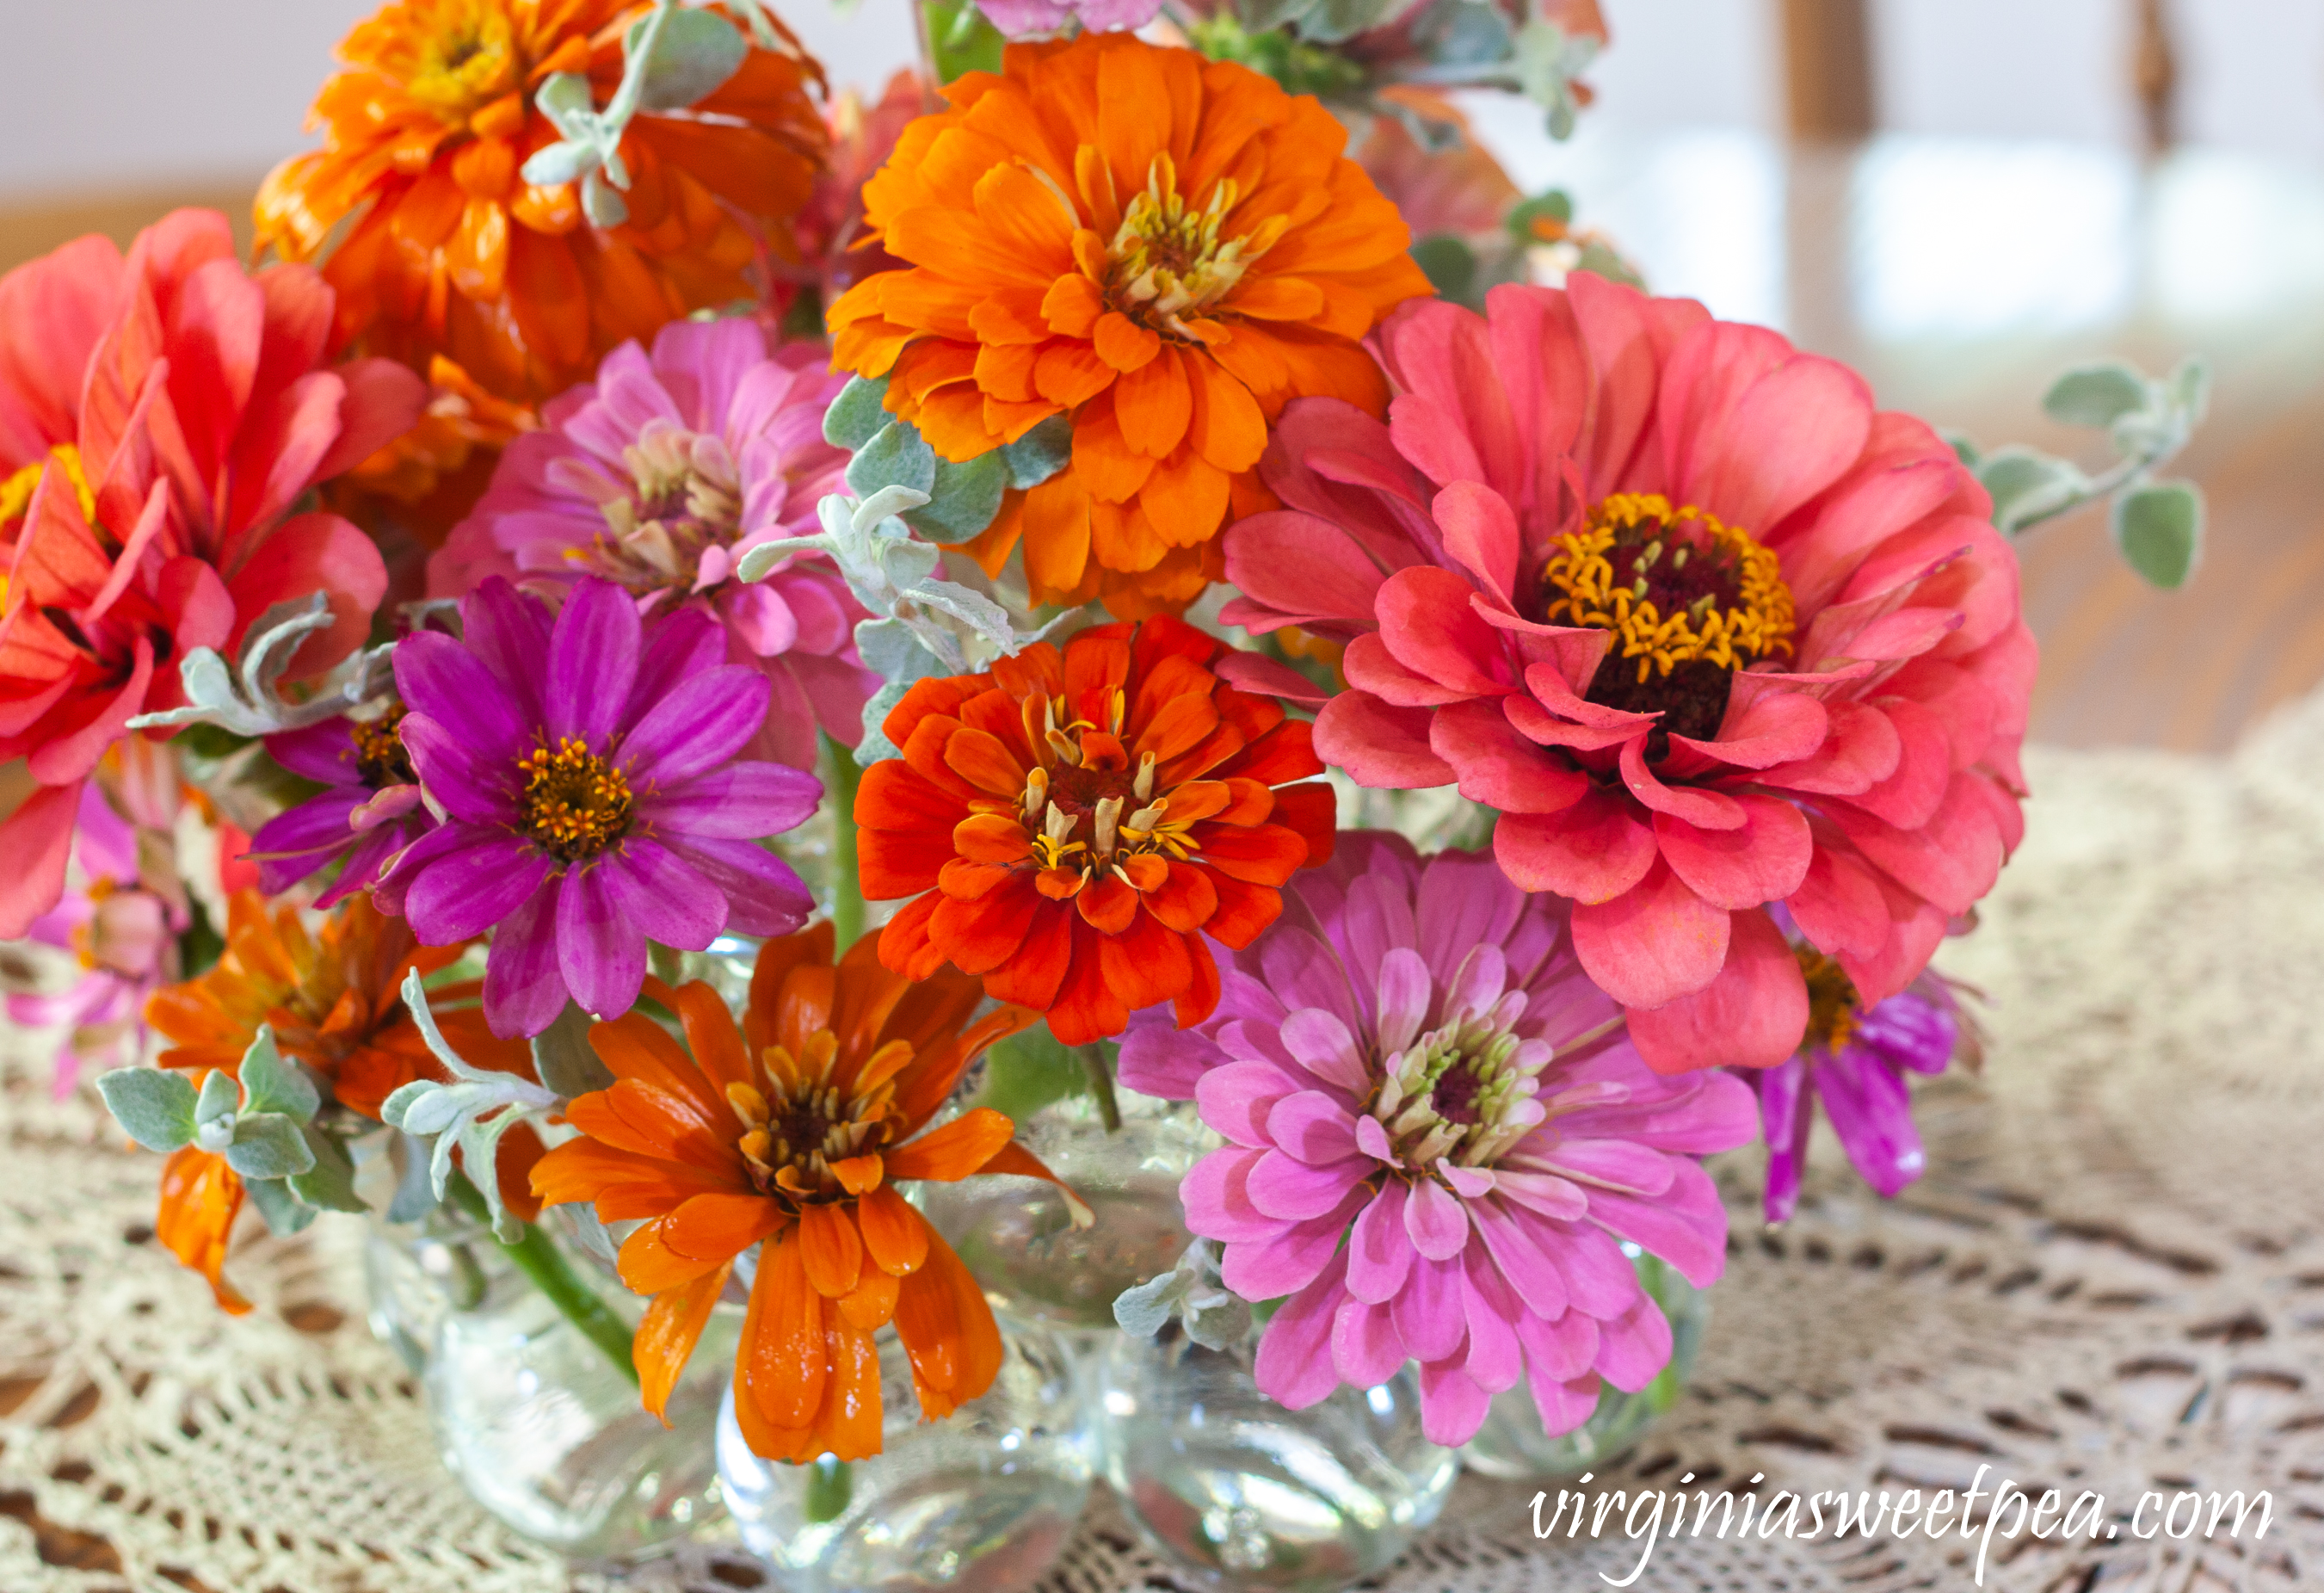 Zinnias used in a summer flower arrangement.